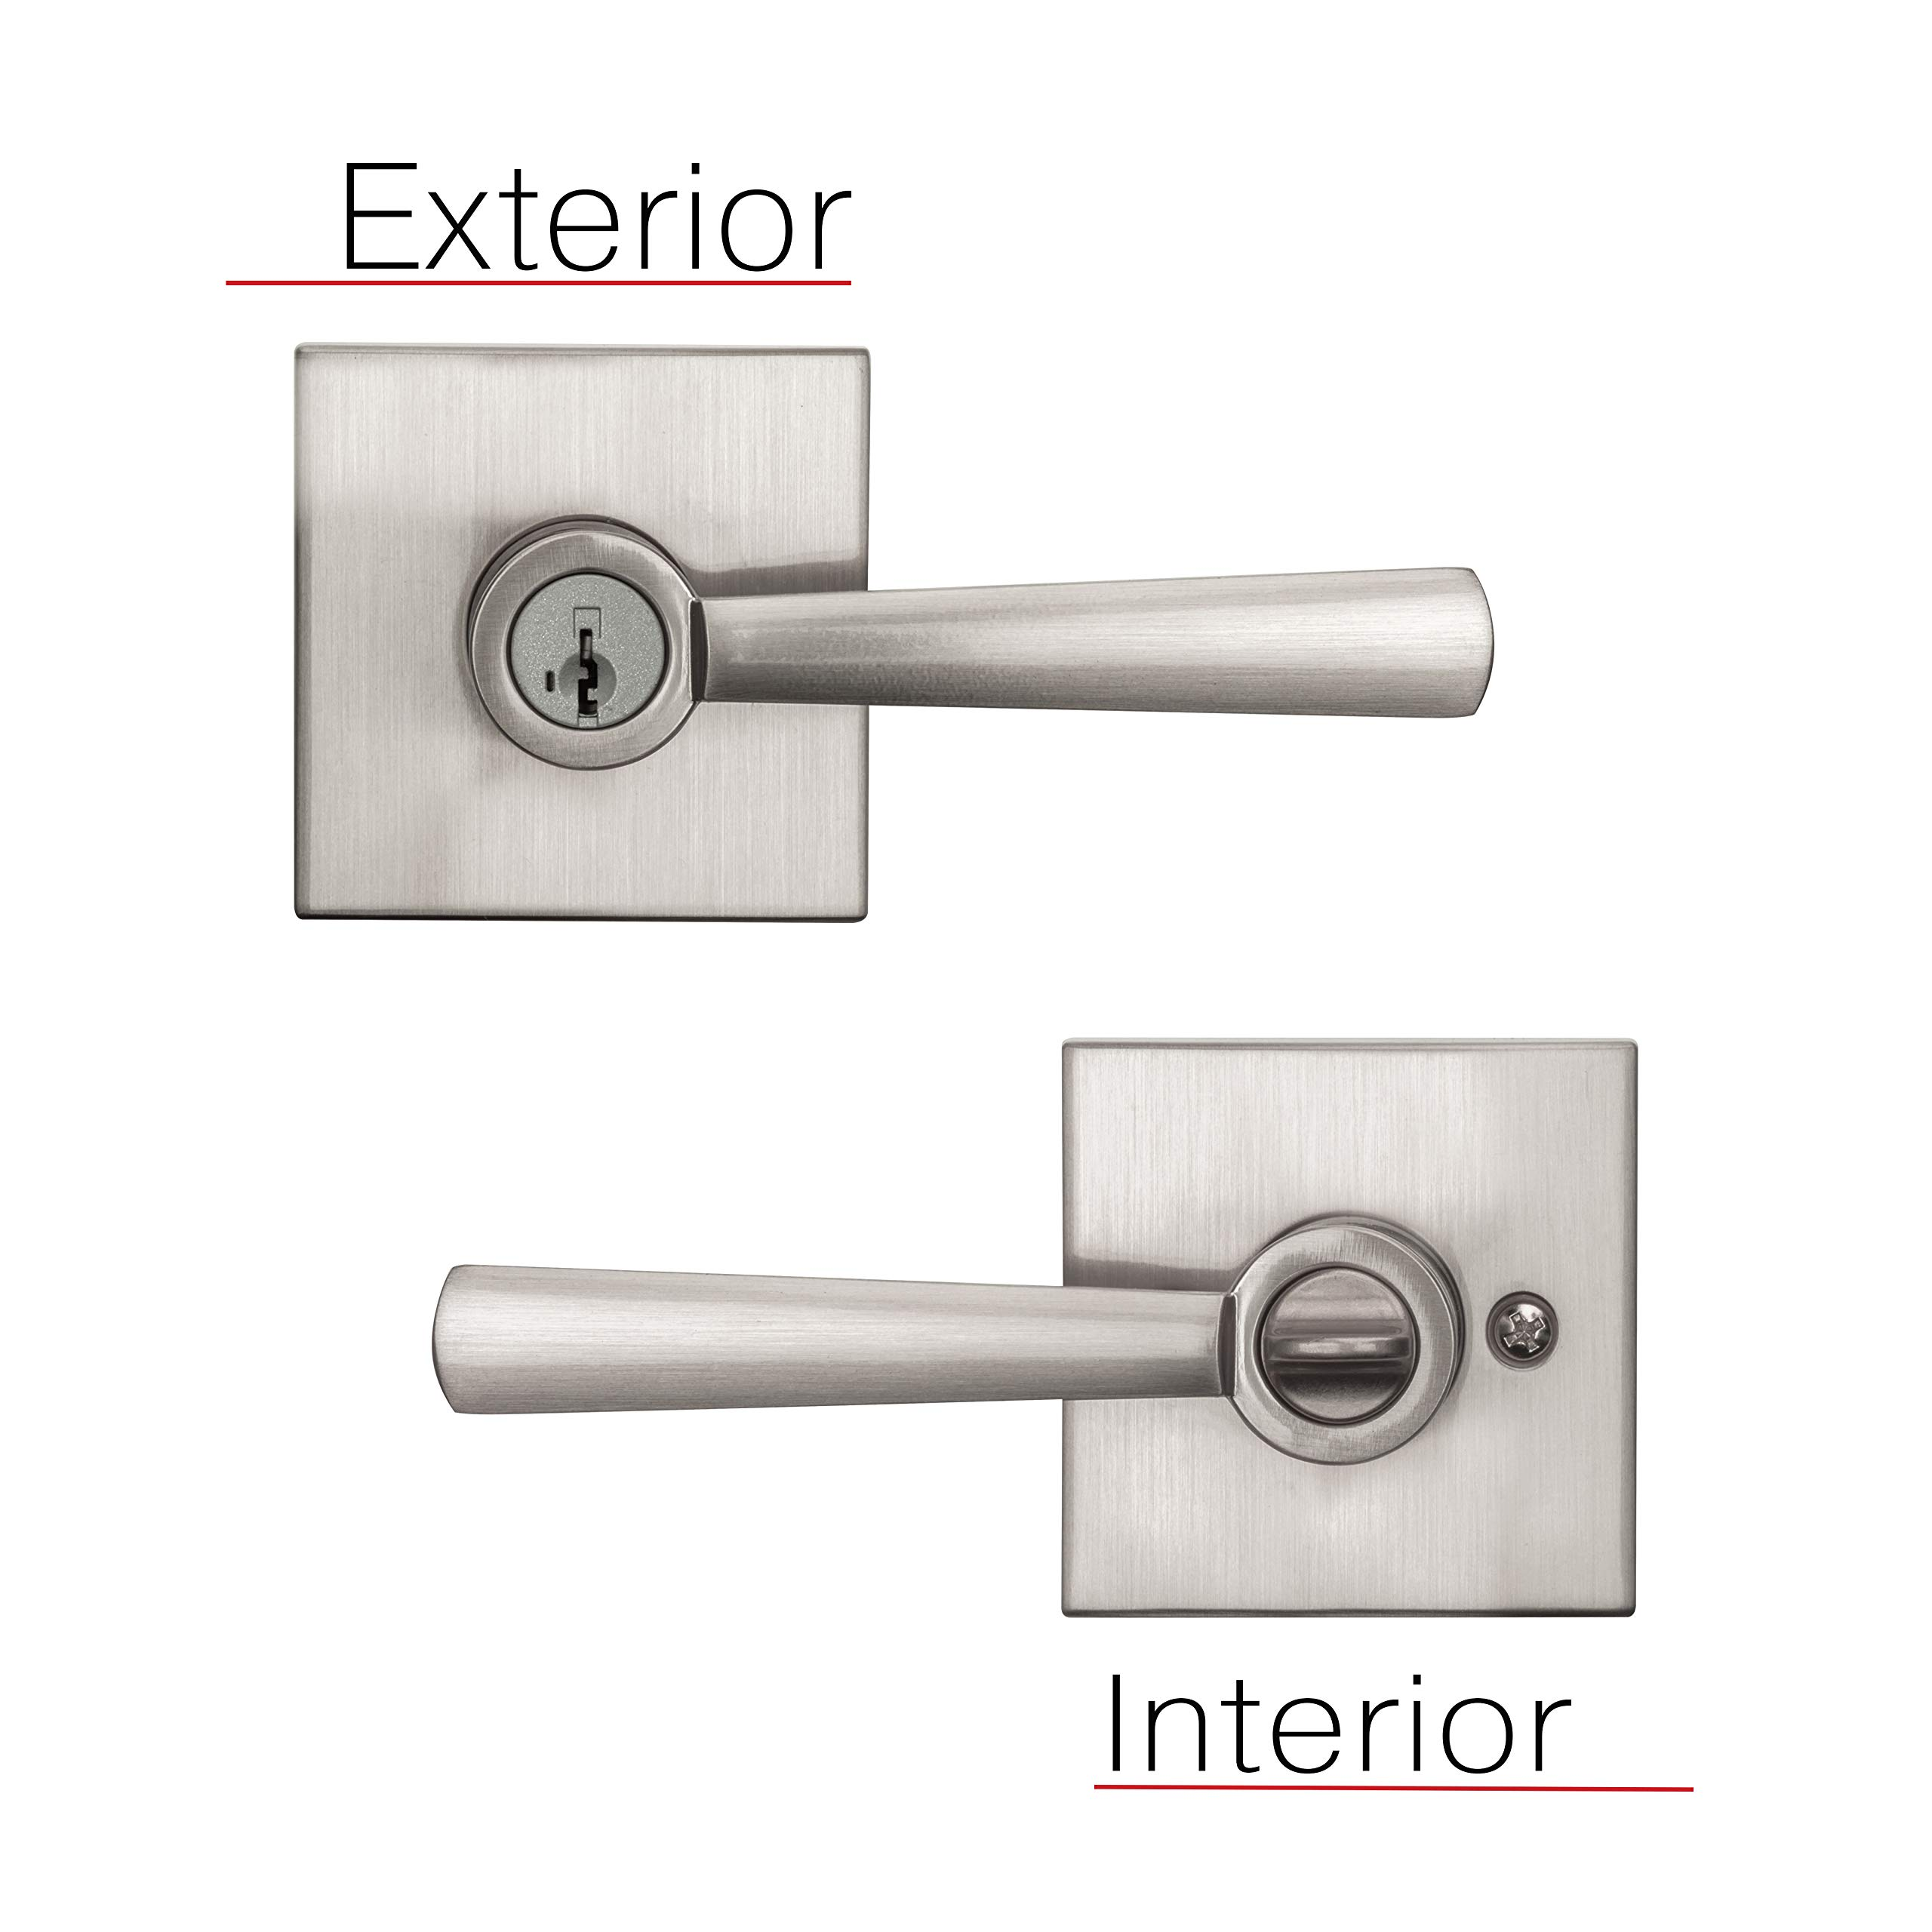 Baldwin Prestige Spyglass Entry Lever featuring SmartKey in Satin Nickel by Baldwin (Image #6)